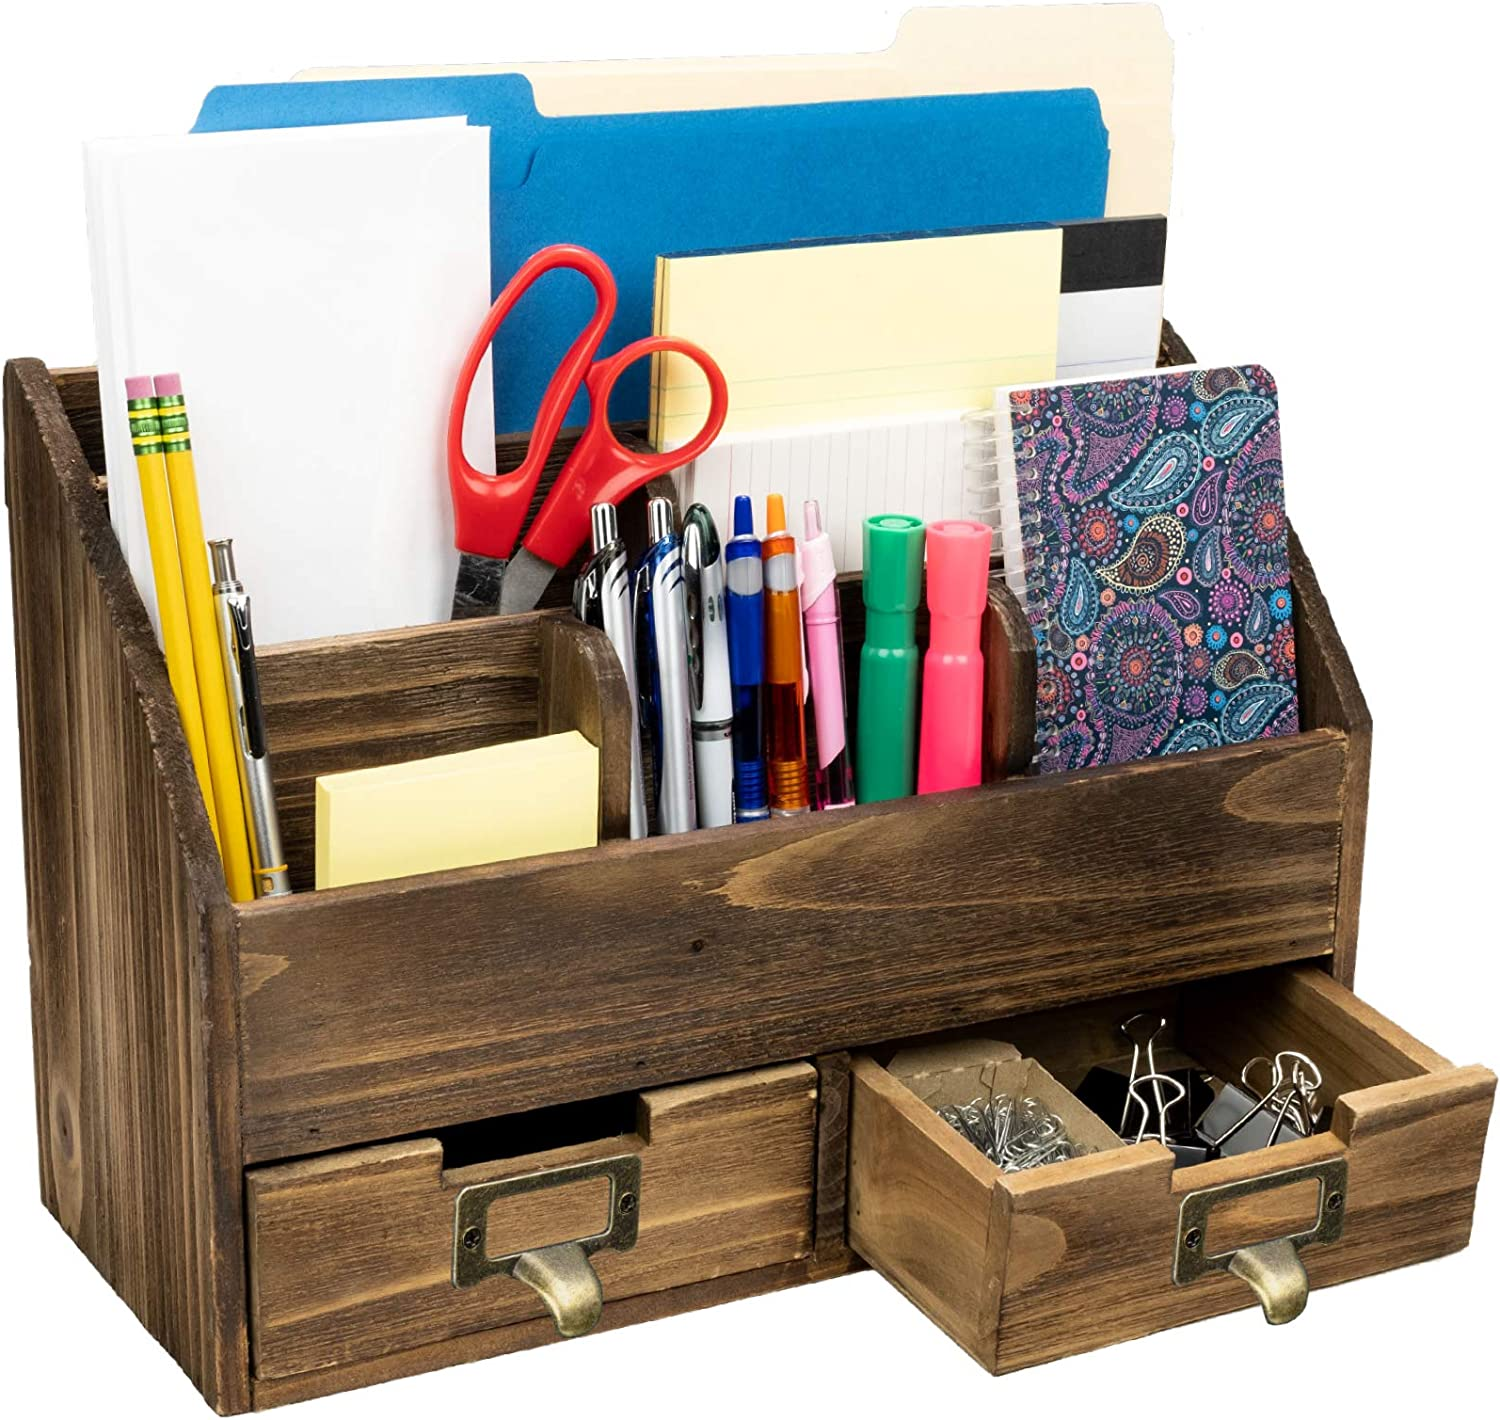 Rustic Wood Office Desk Organizer: Compartments Includes 2 6 and Indianapolis Mall Excellence